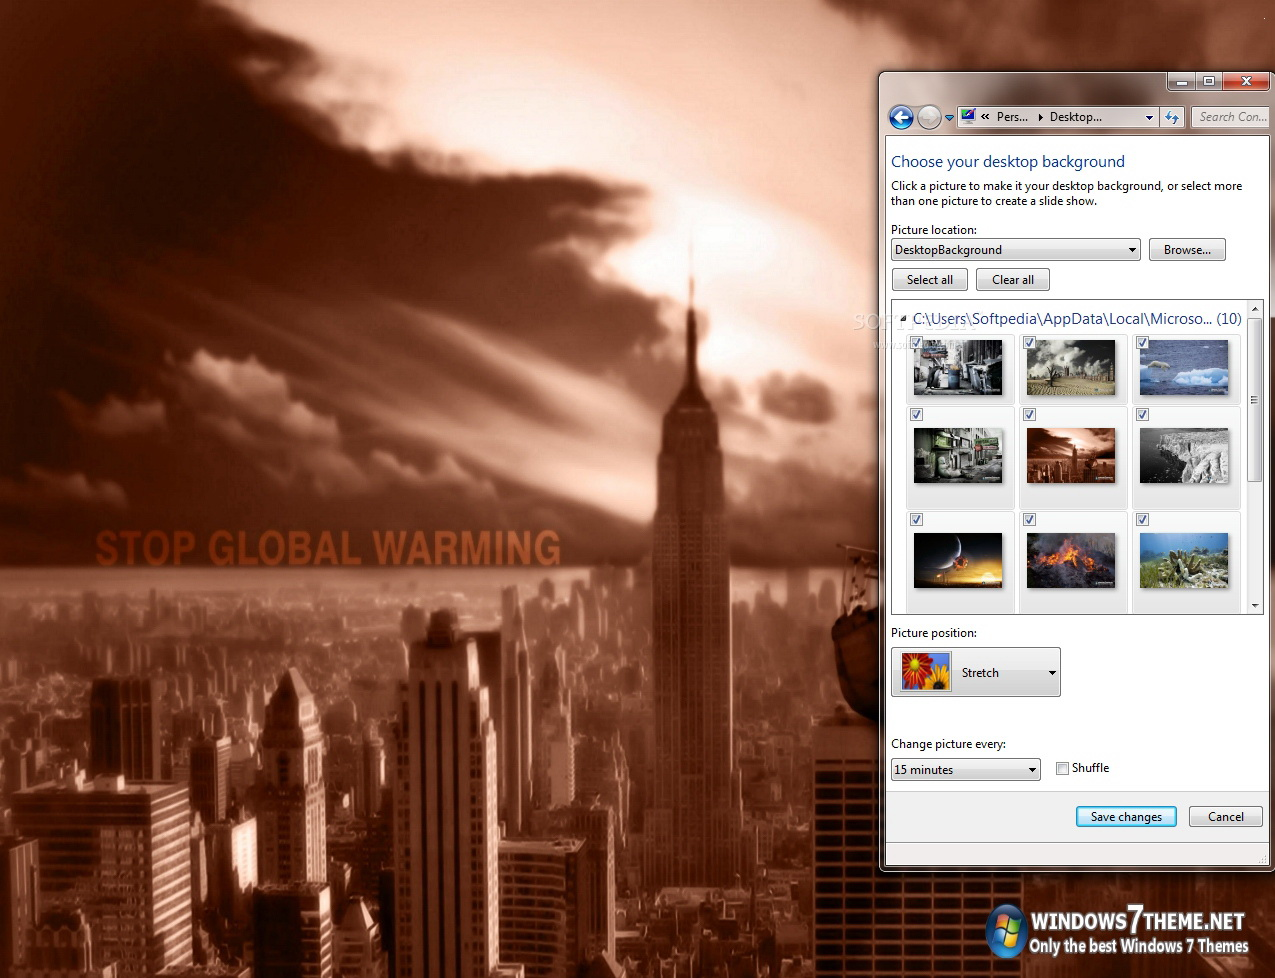 Global Warming Windows 7 Theme